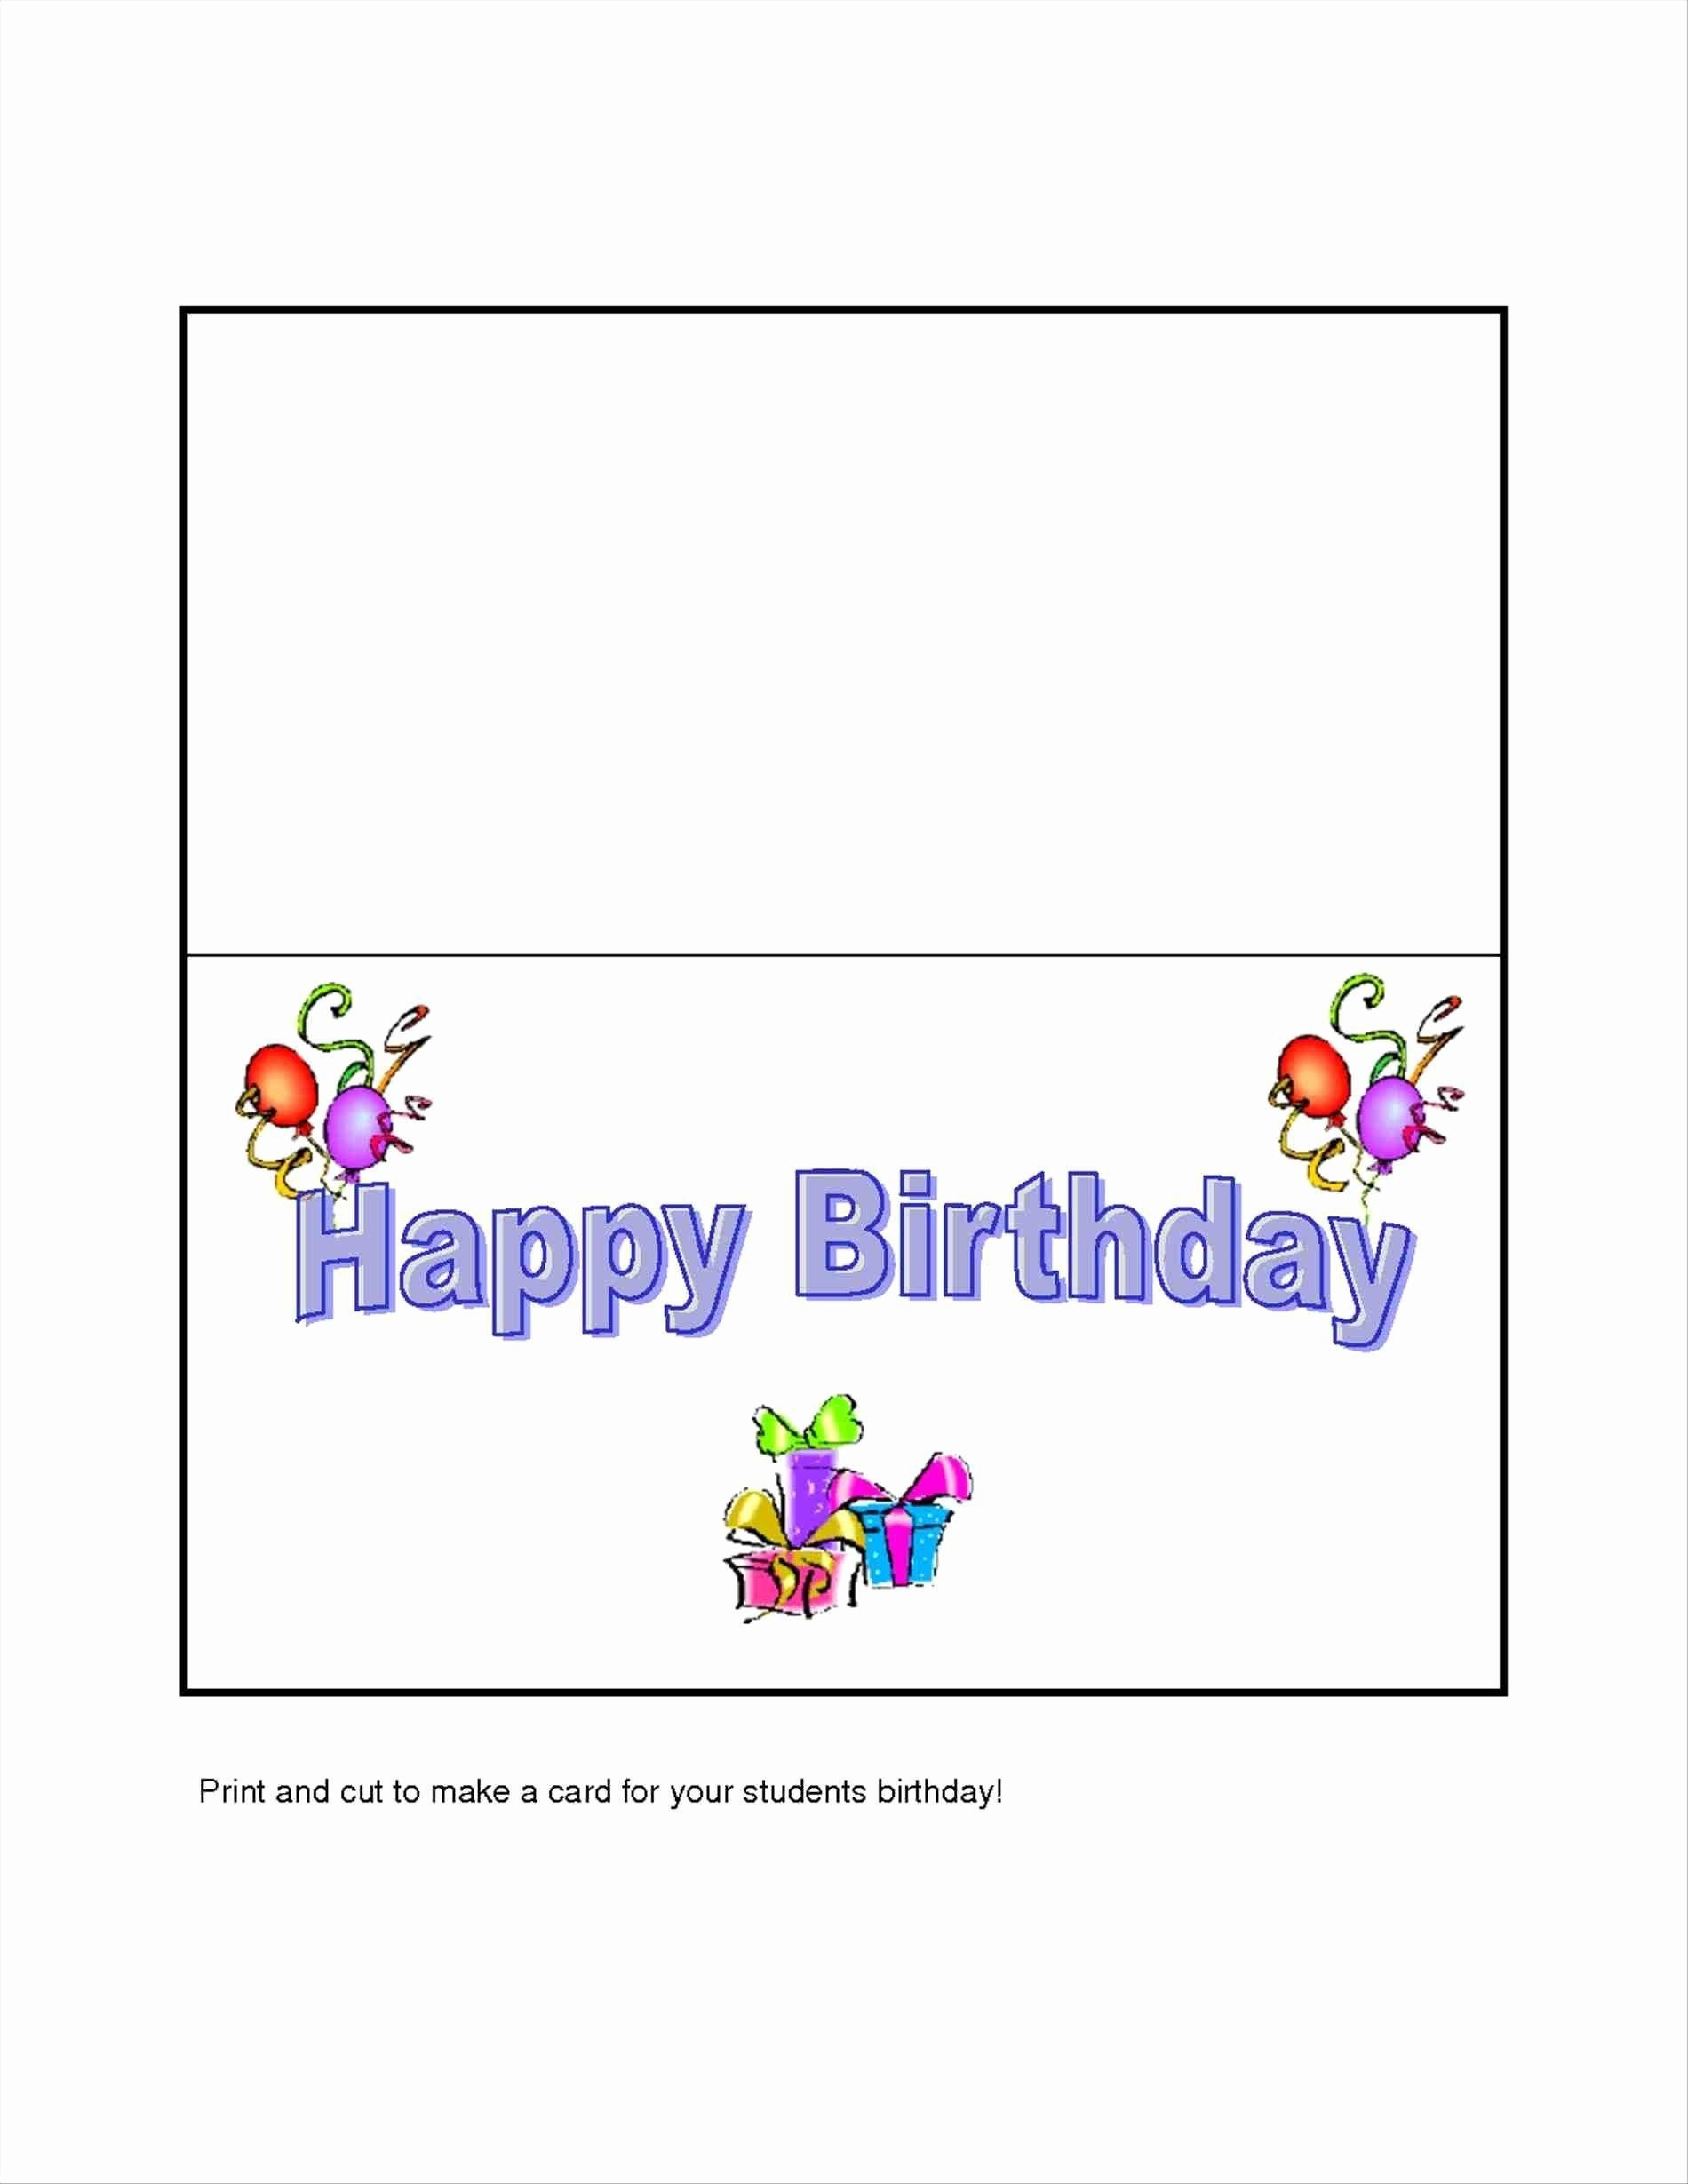 94+ Make Birthday Cards For Free Online - Make A Wish Download Our - Make Your Own Printable Birthday Cards Online Free